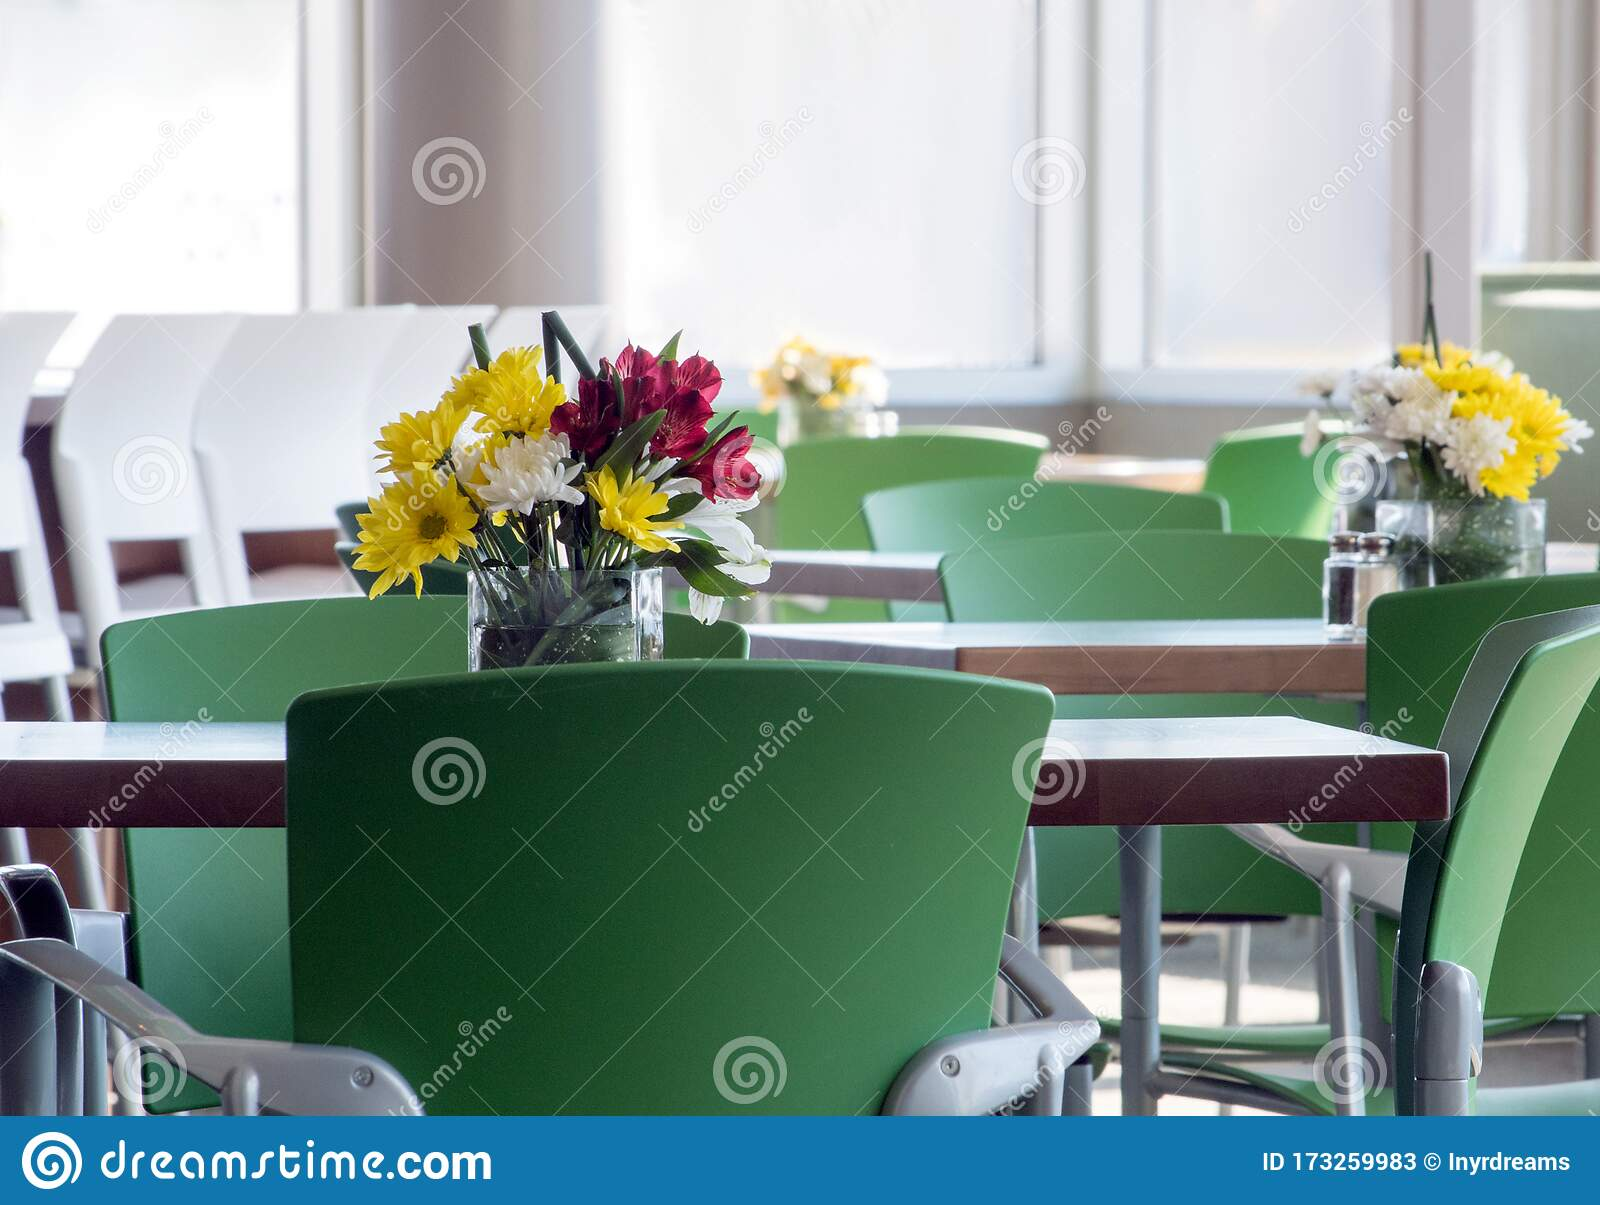 Tables And Chairs With Pretty Flower Centerpieces Stock Image Image Of Date Empty 173259983